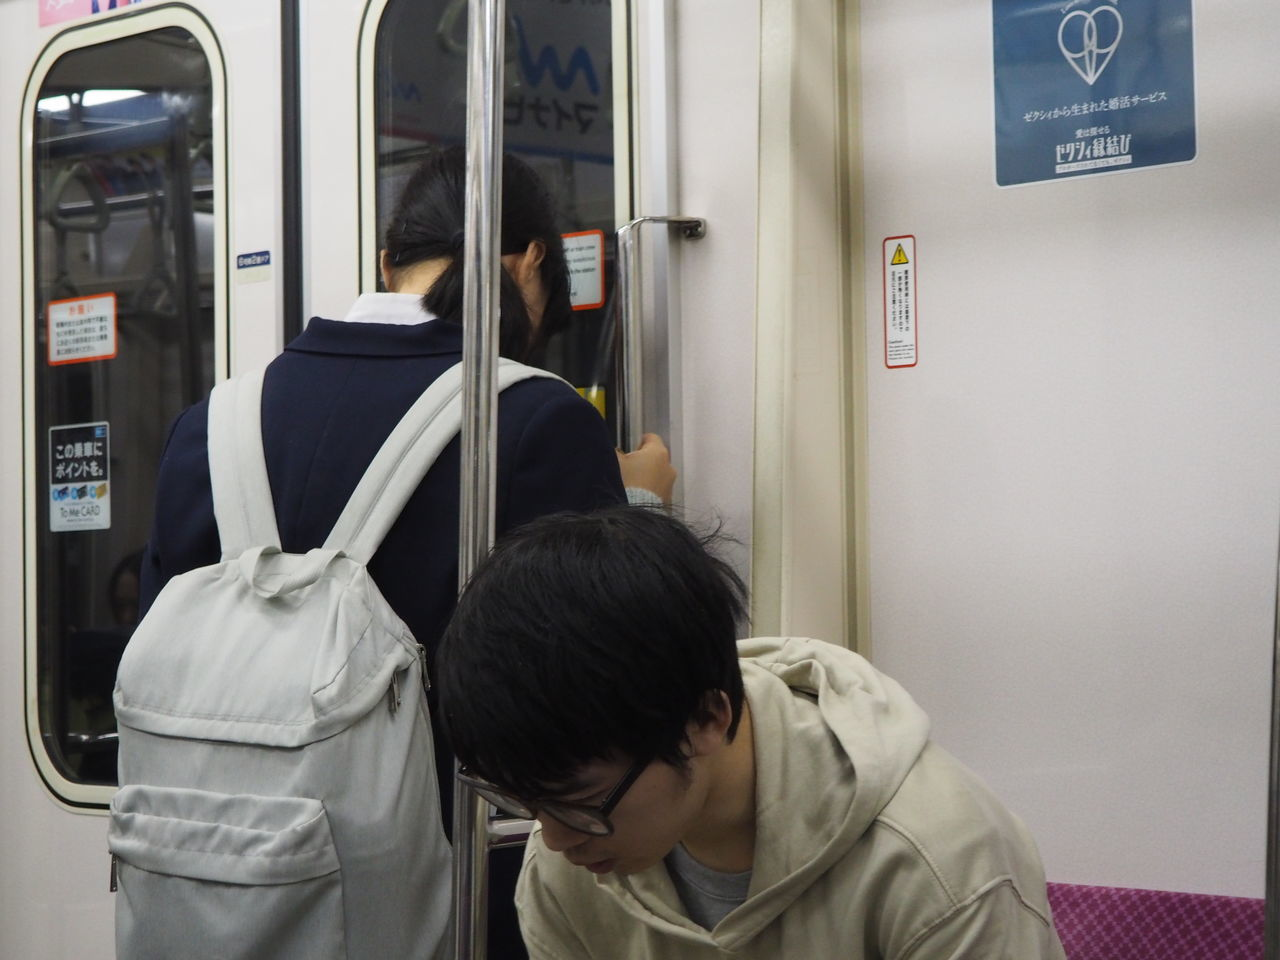 Going To School Heads Down Kids Mode Of Transport No Communication Public Transportation School Kids  Shyness Subway Subway Train Teenagers  Tokyo Subway